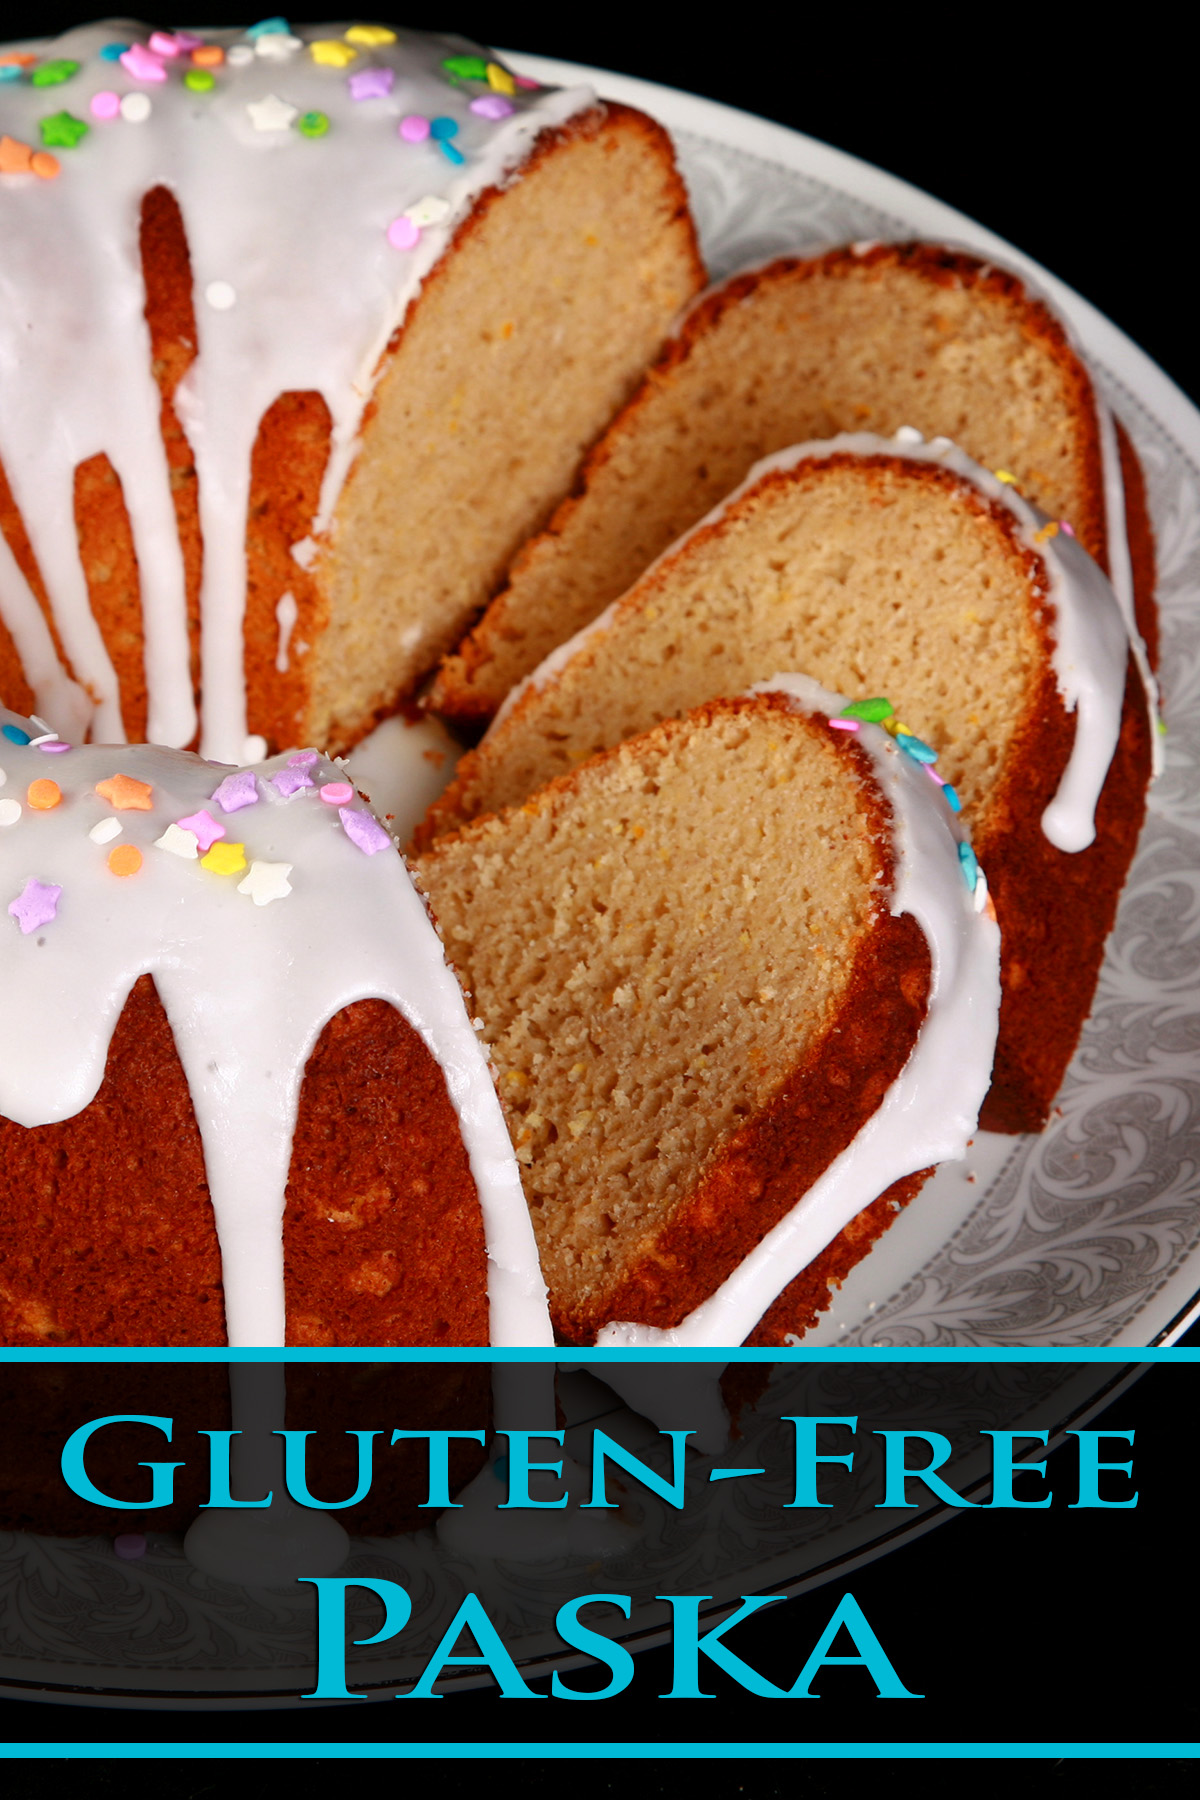 A close up view of a gluten-free paska. It's in the shape of a bundt pan, with dripping white glaze and topped with pastel coloured sprinkles. A section has been sliced, the slices are fanned out on the plate.